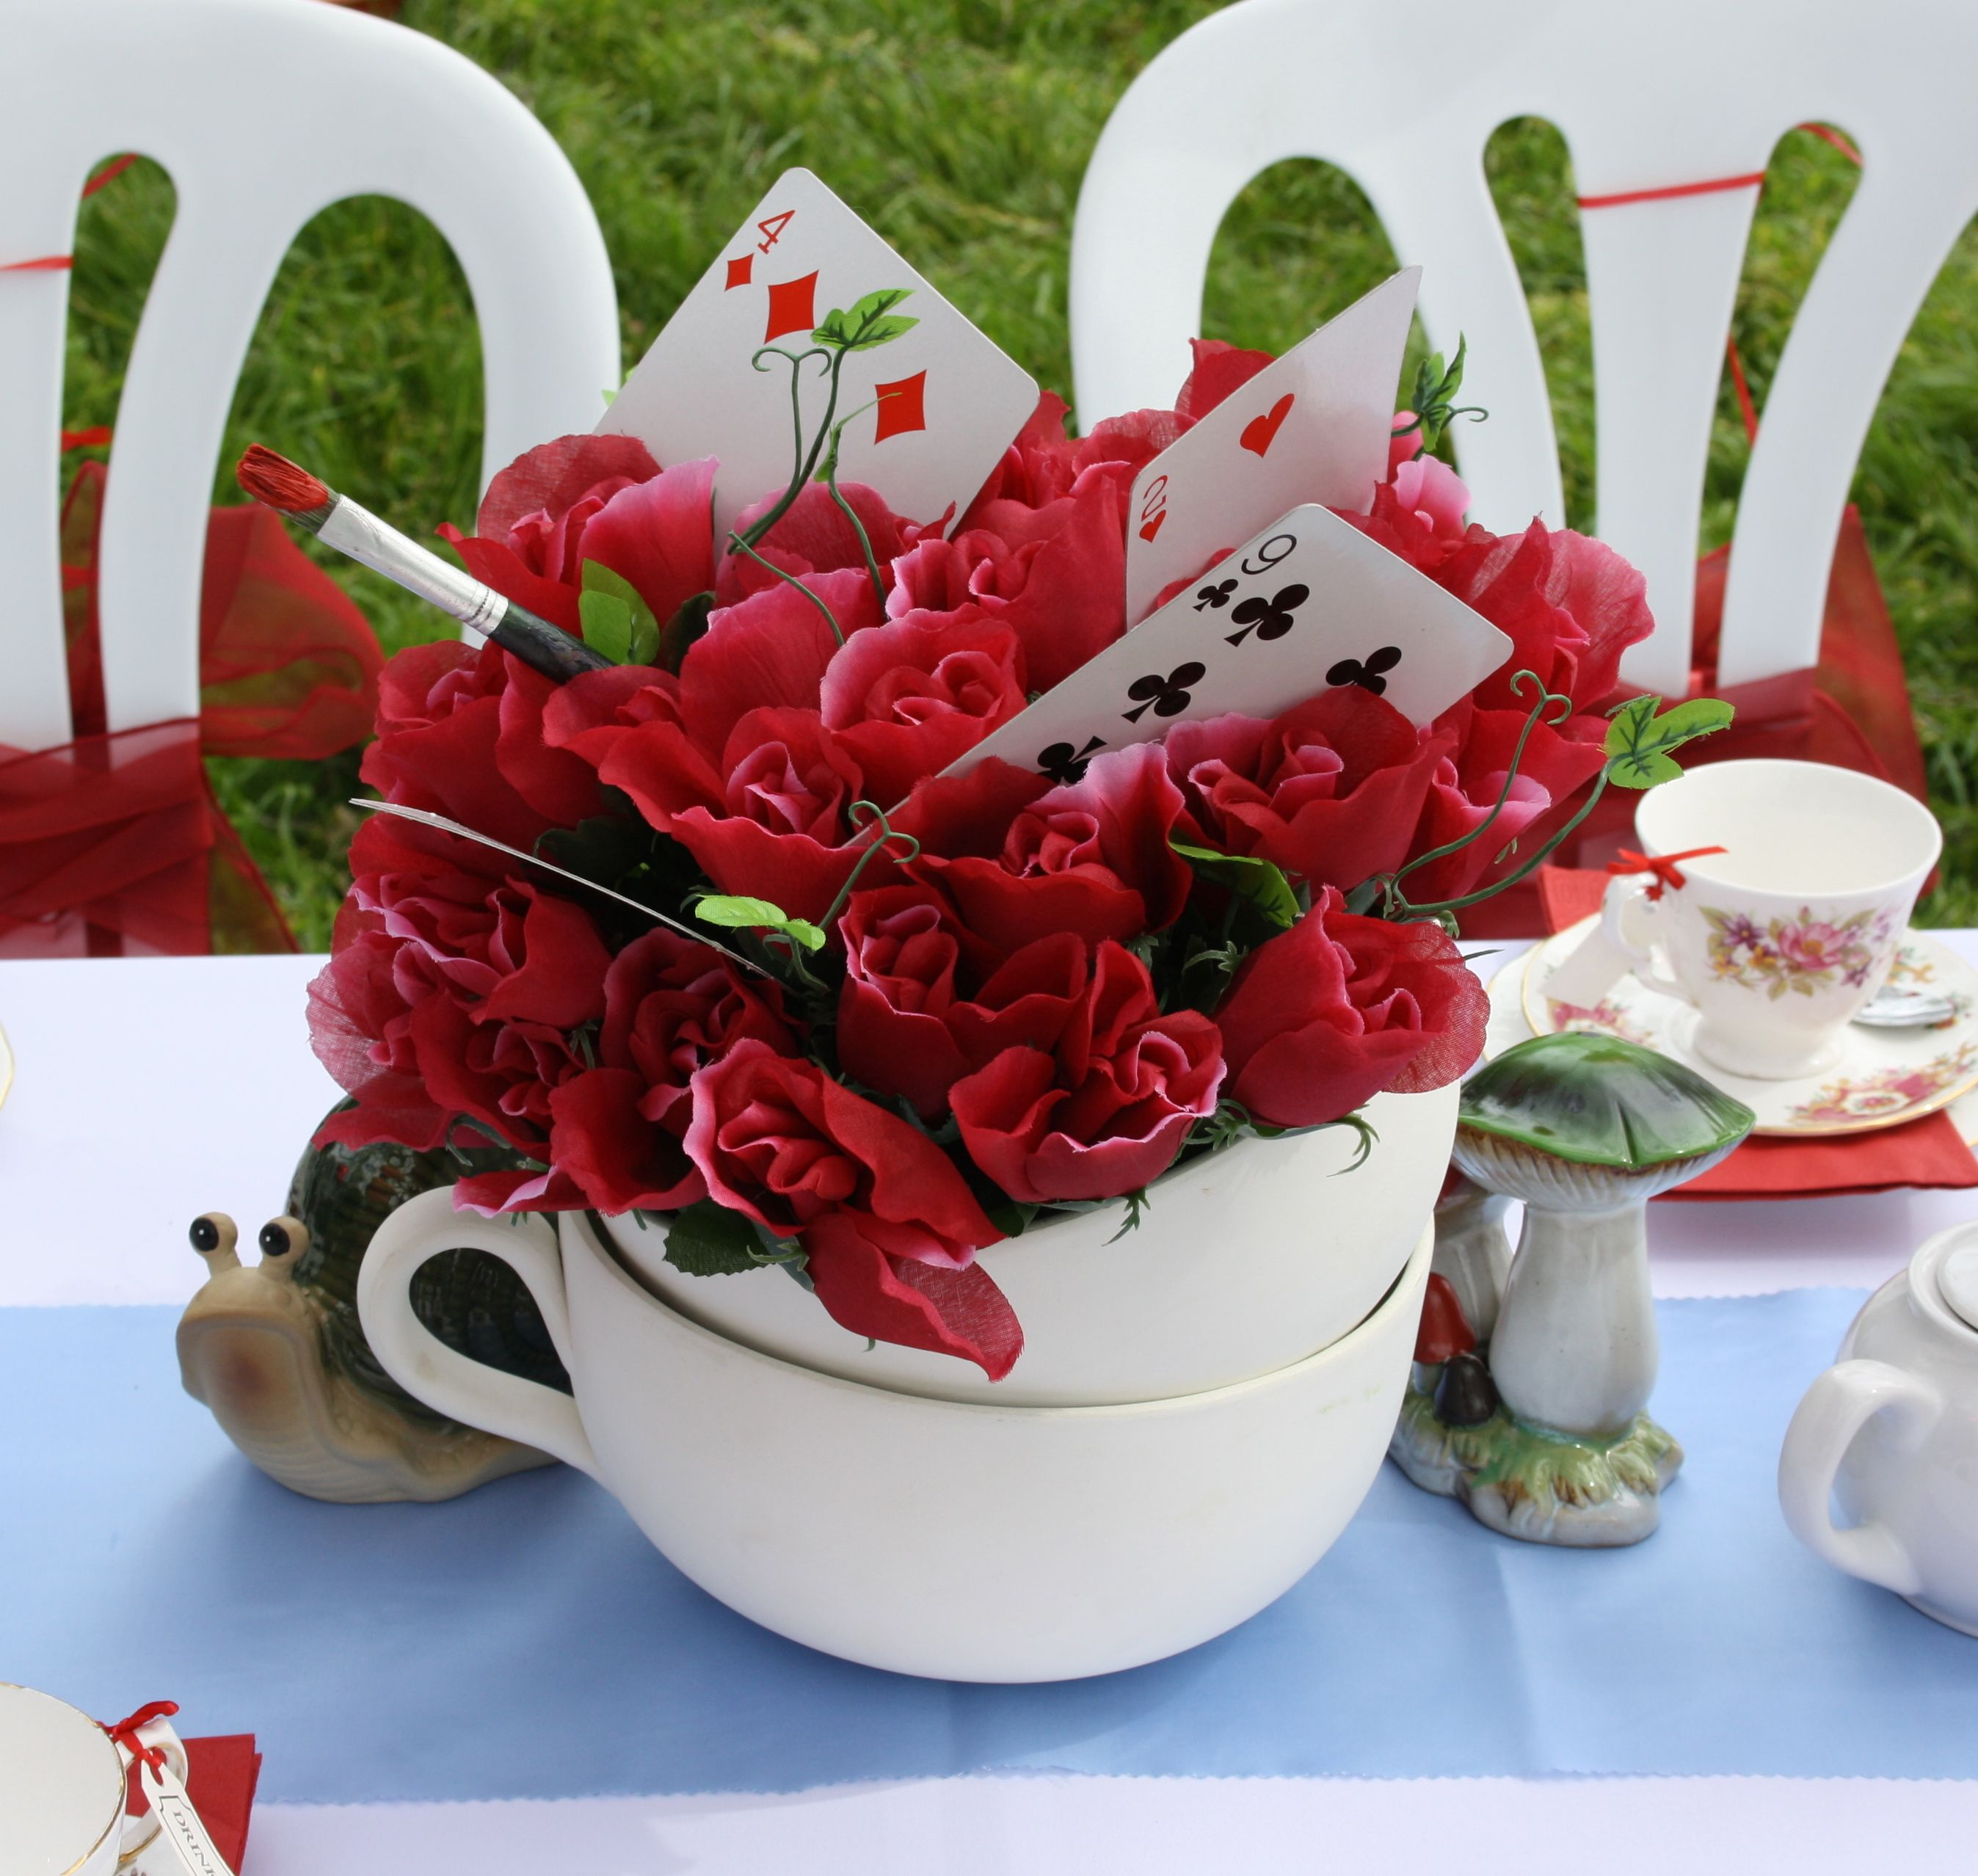 Alice in Wonderland table setting | Toddler bday party ideas ...